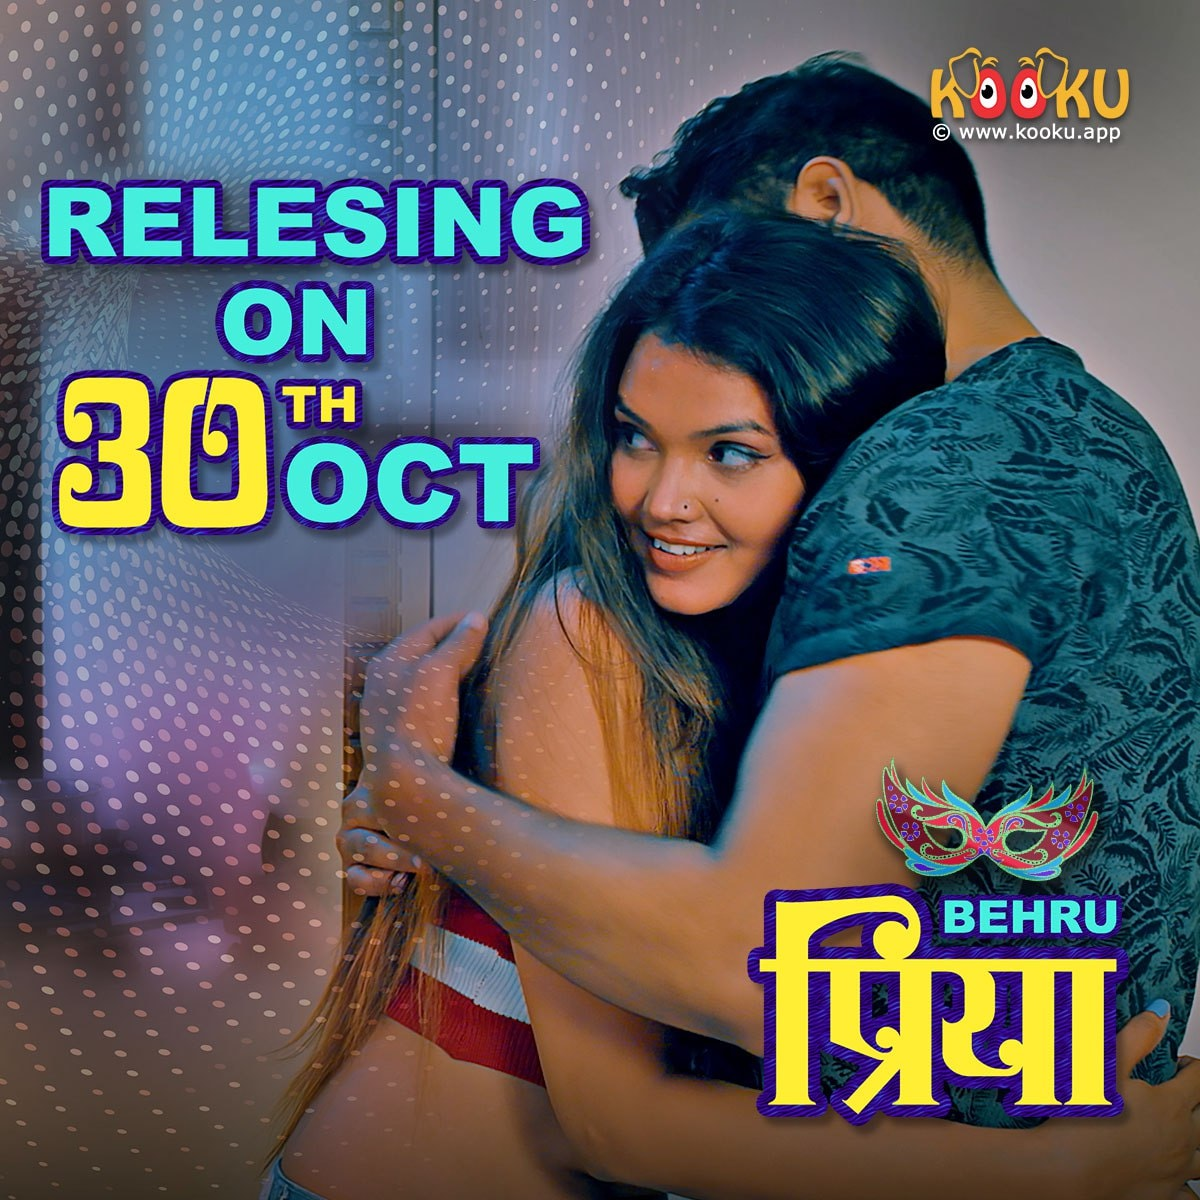 18+ Behrupriya 2020 Hindi Kooku App Complete Web Series 720p HDRip 450MB Download